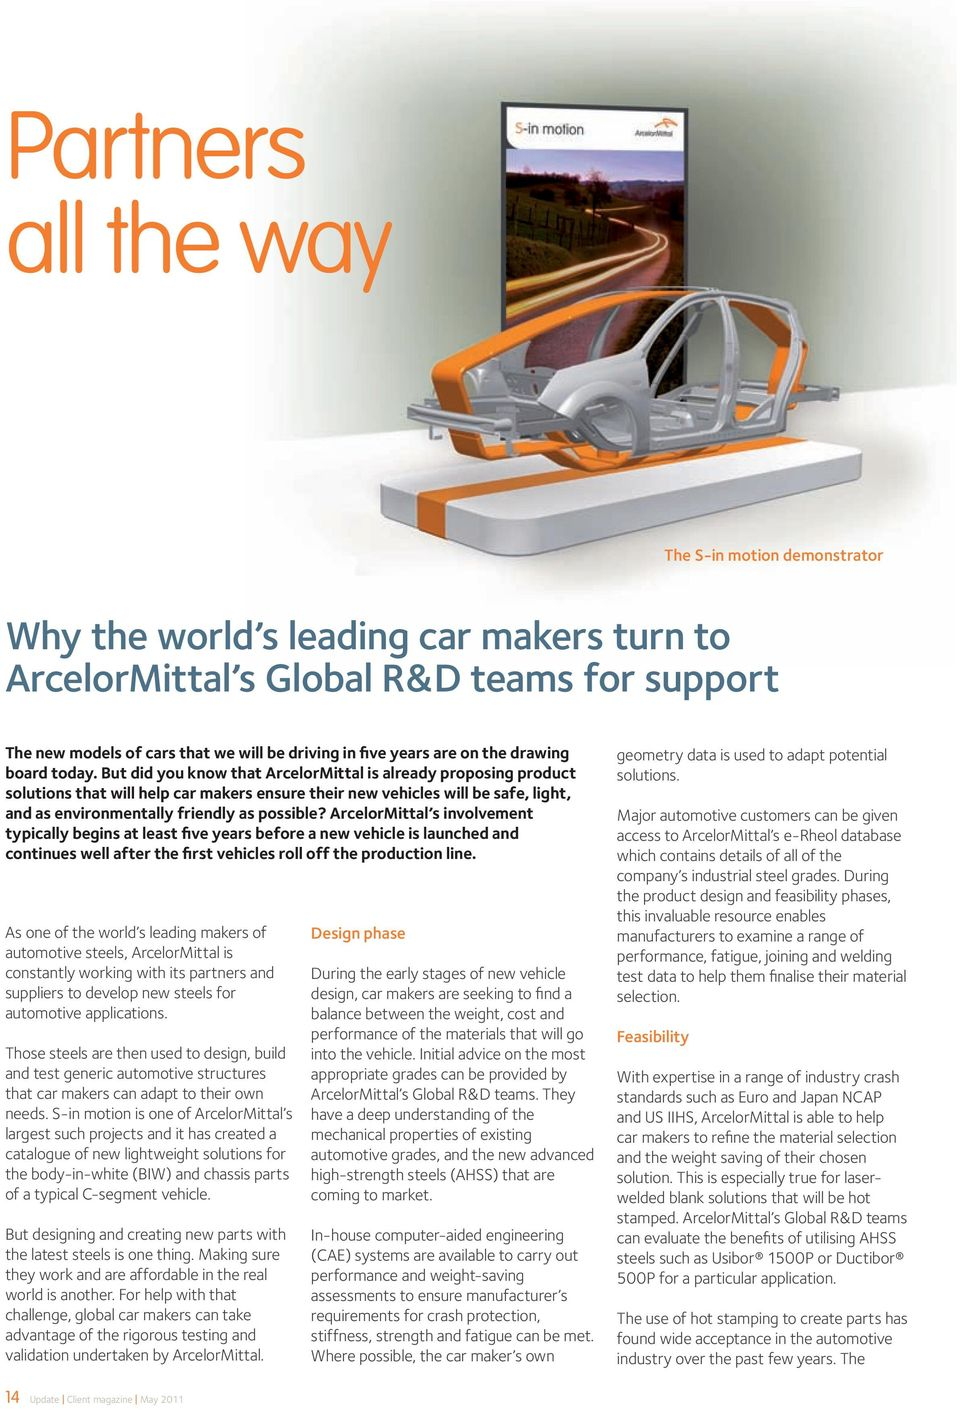 But did you know that ArcelorMittal is already proposing product solutions that will help car makers ensure their new vehicles will be safe, light, and as environmentally friendly as possible?